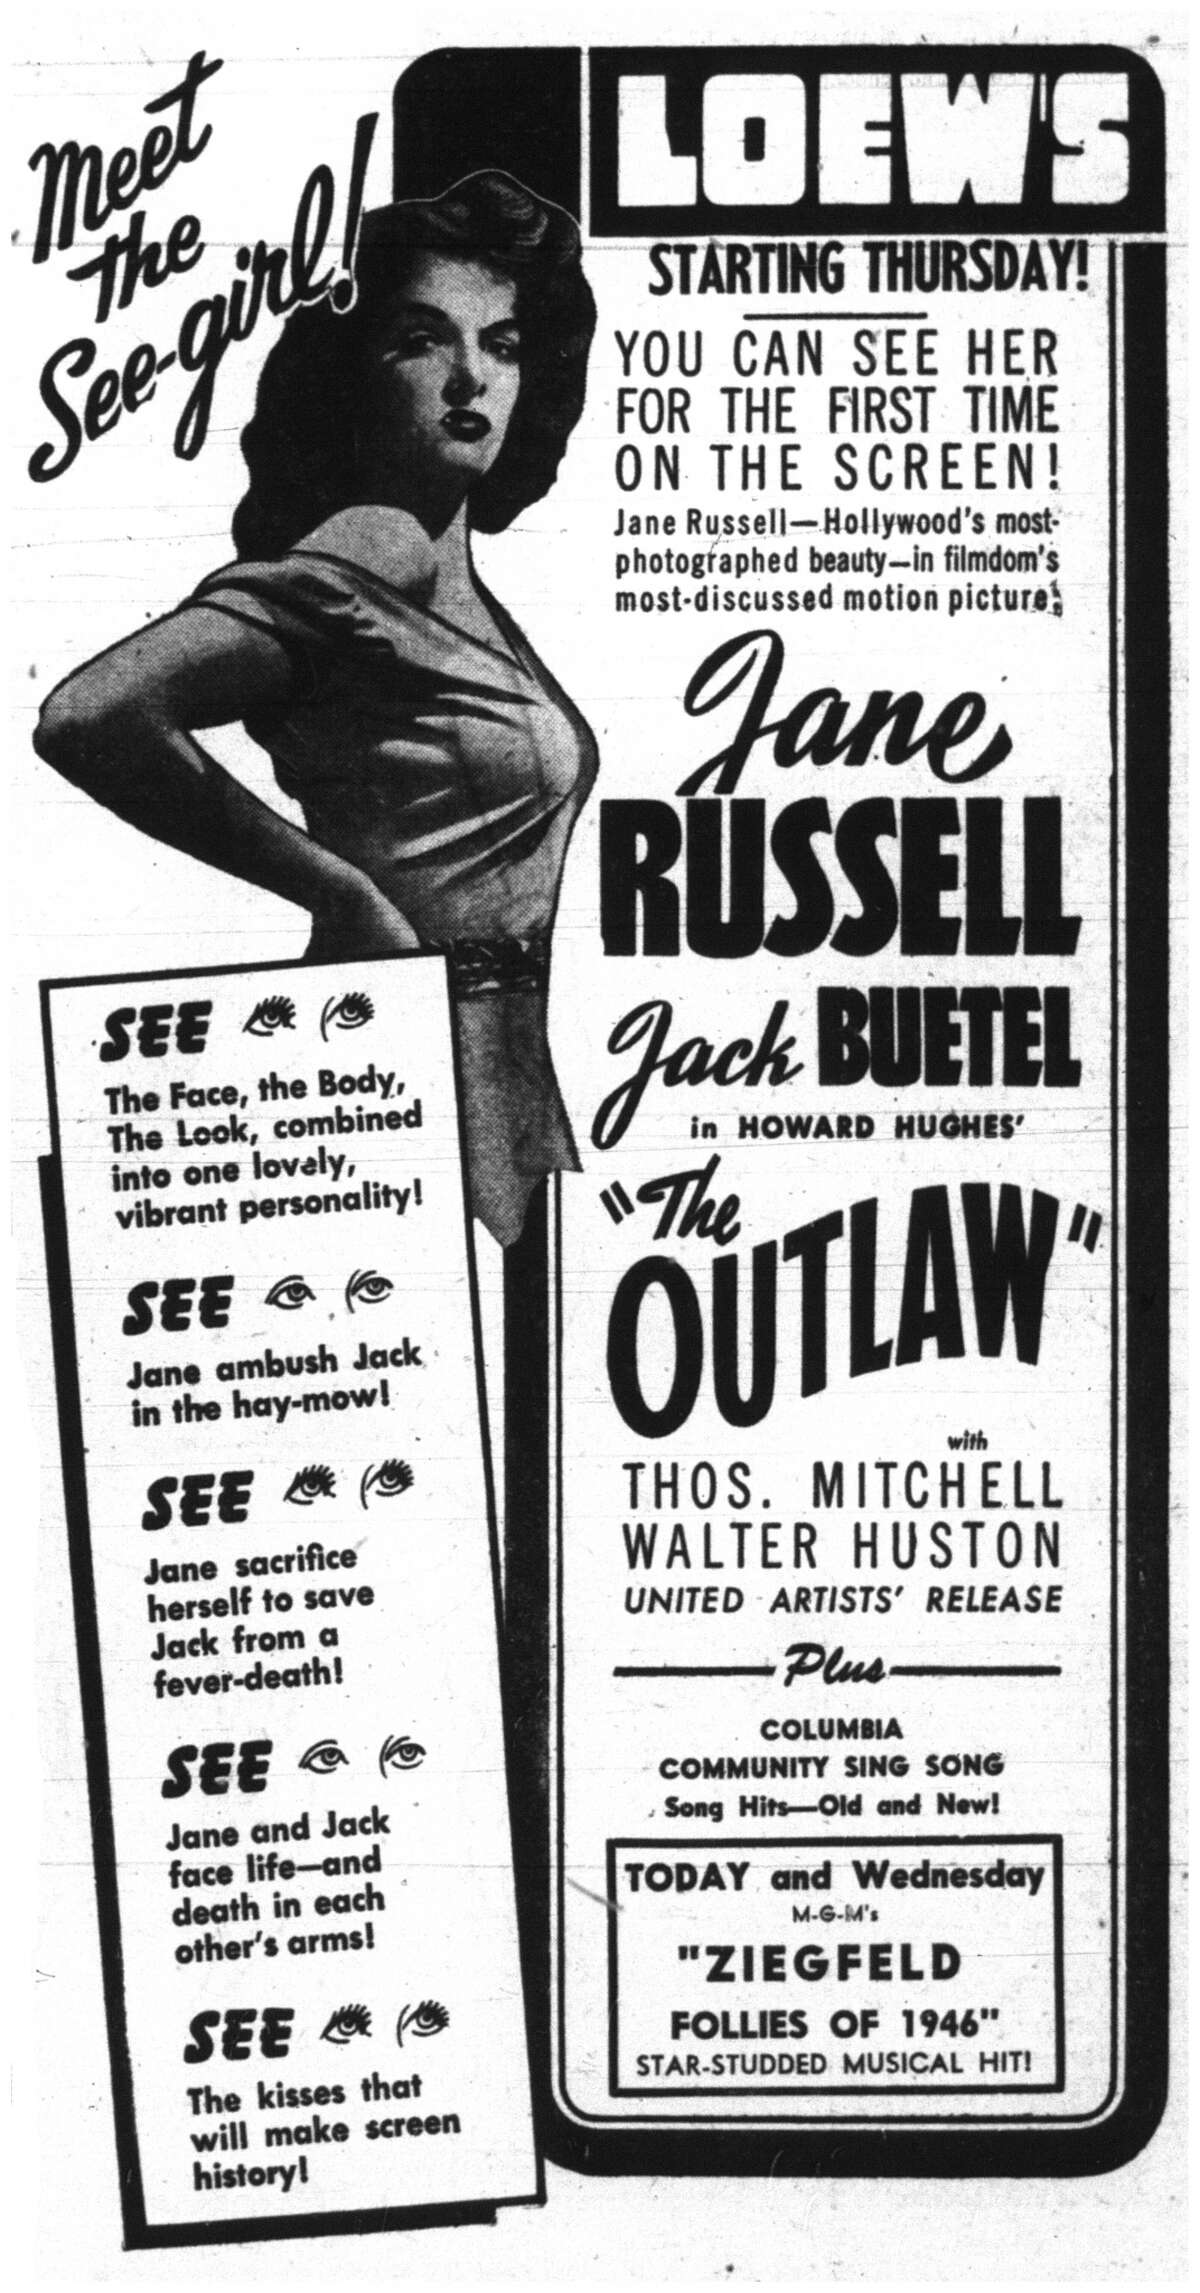 Newspaper advertisement for